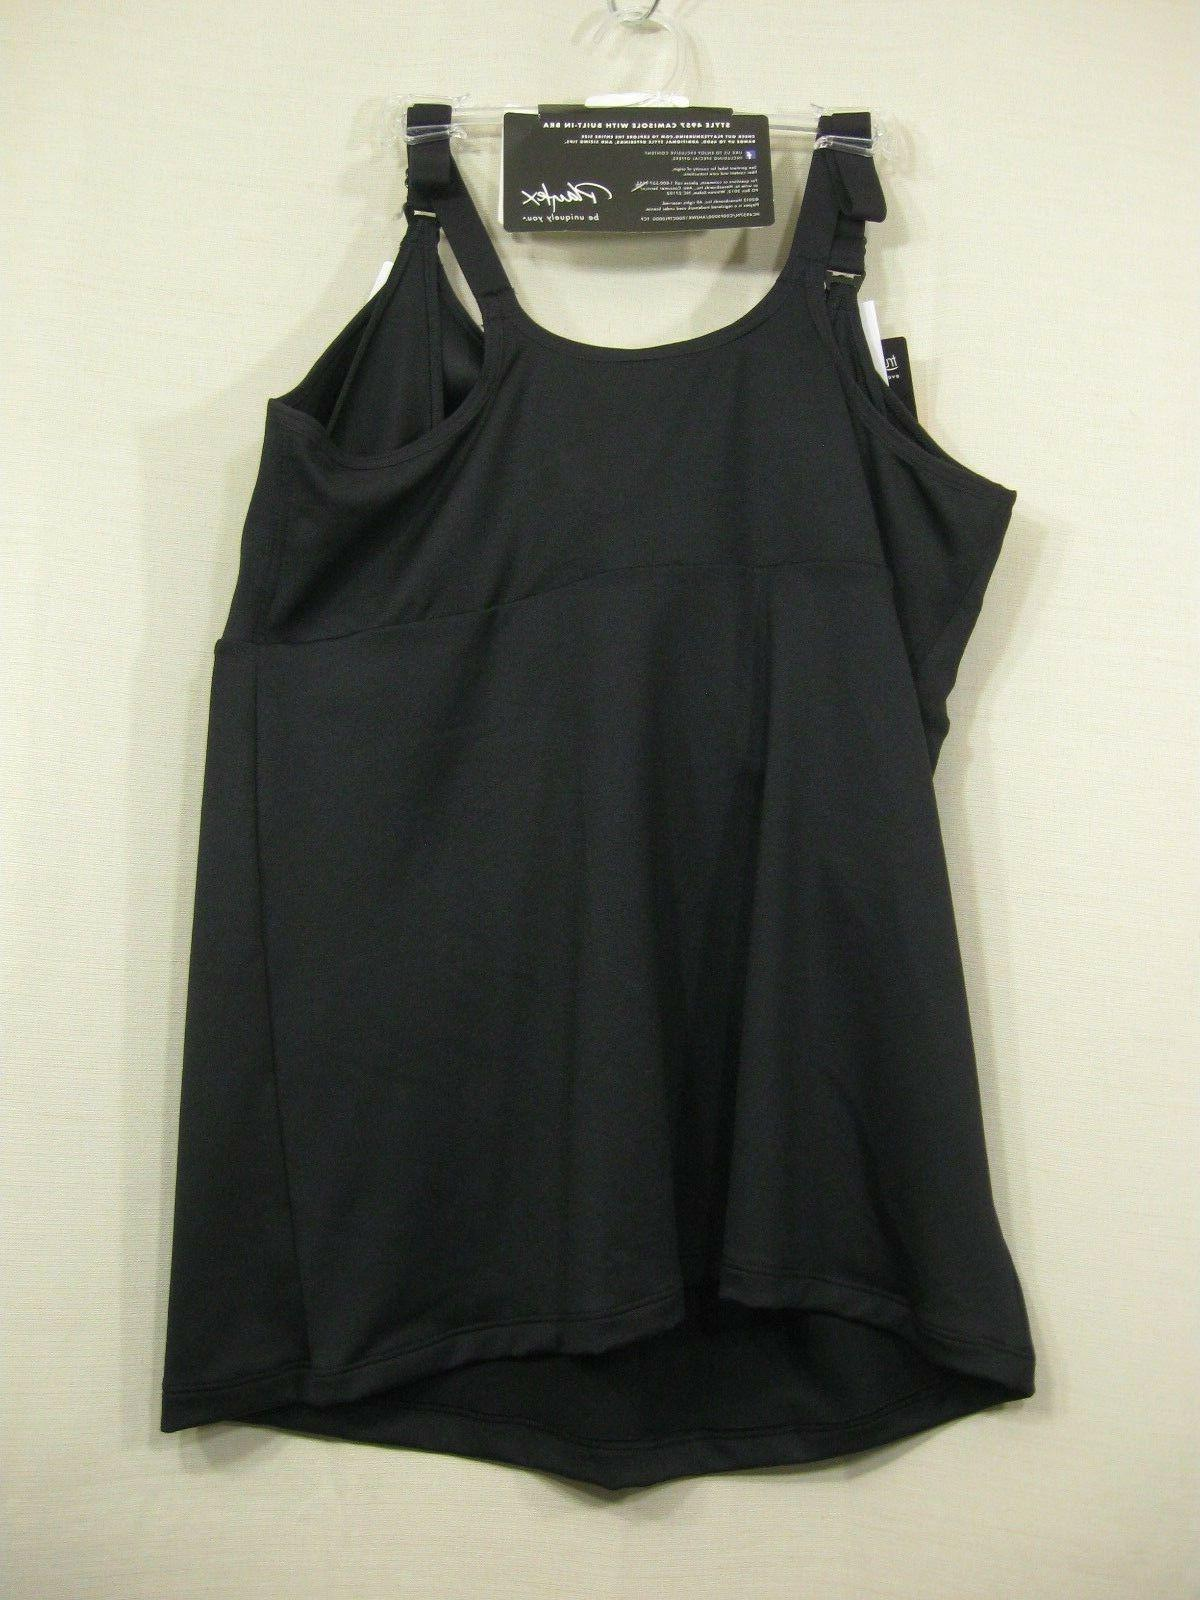 NWT Playtex Black Camisole with Built US4957